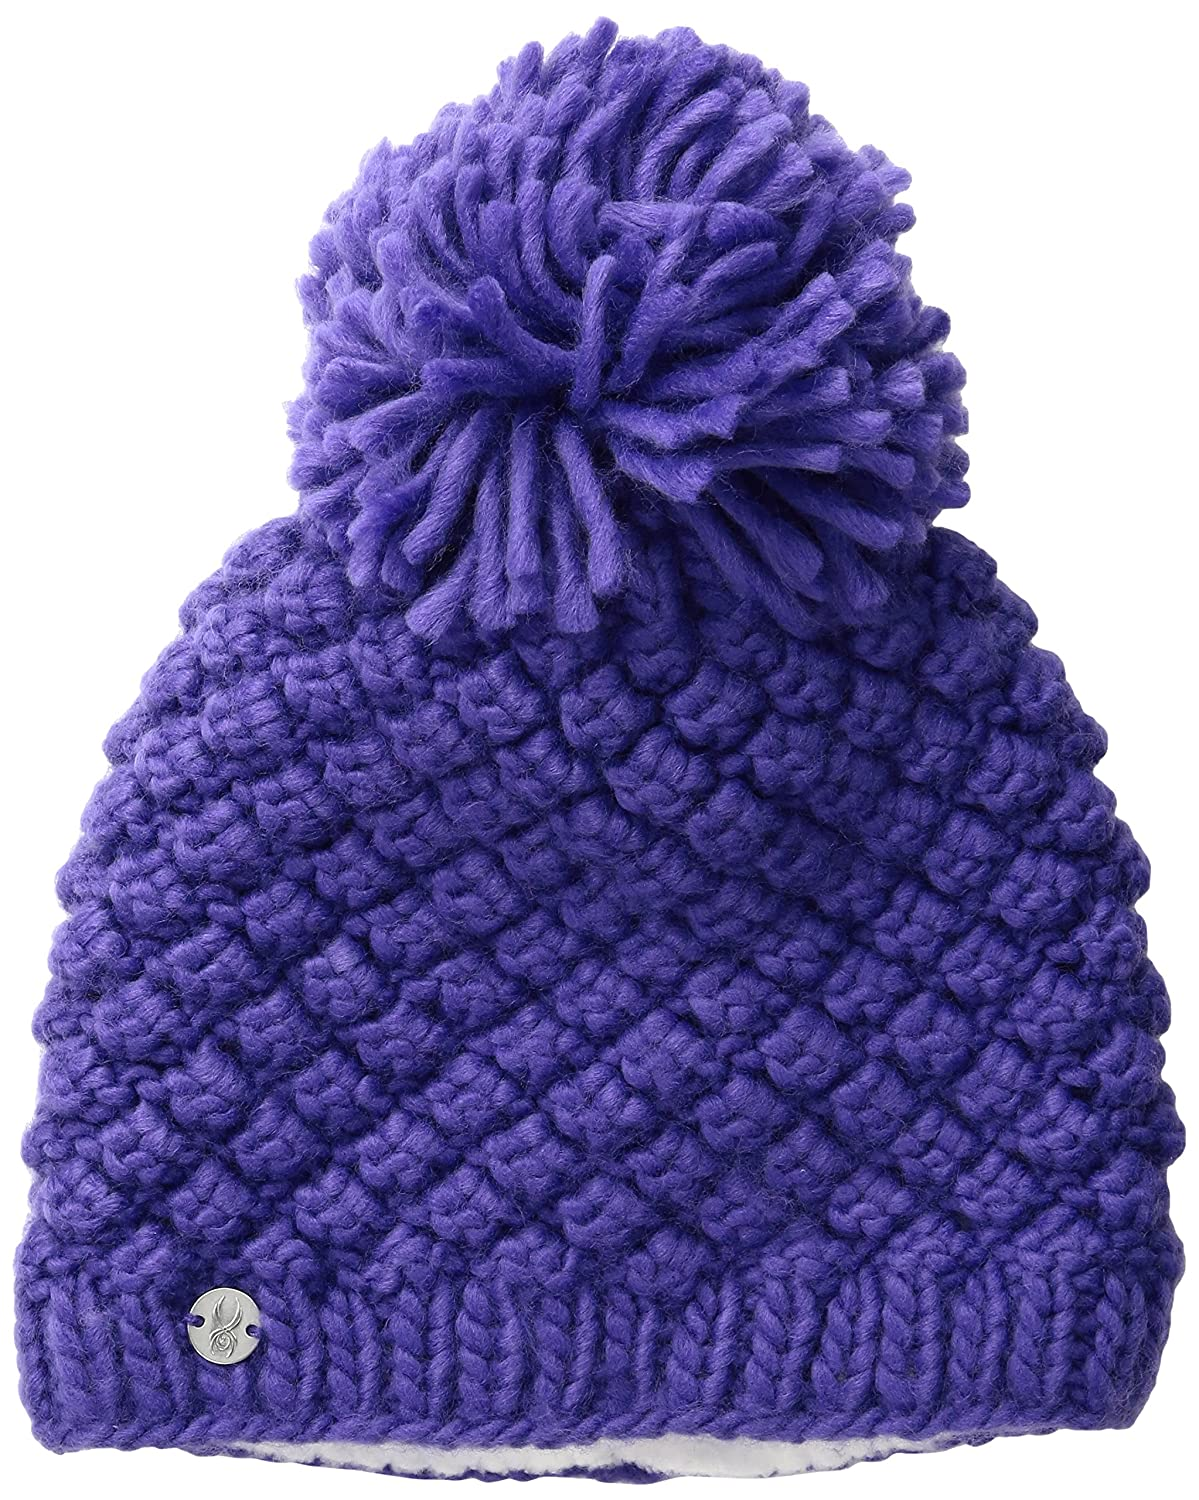 1134e664cd902c Amazon.com: Spyder Girls Brrr Berry Hat, Pixie, One Size: Clothing